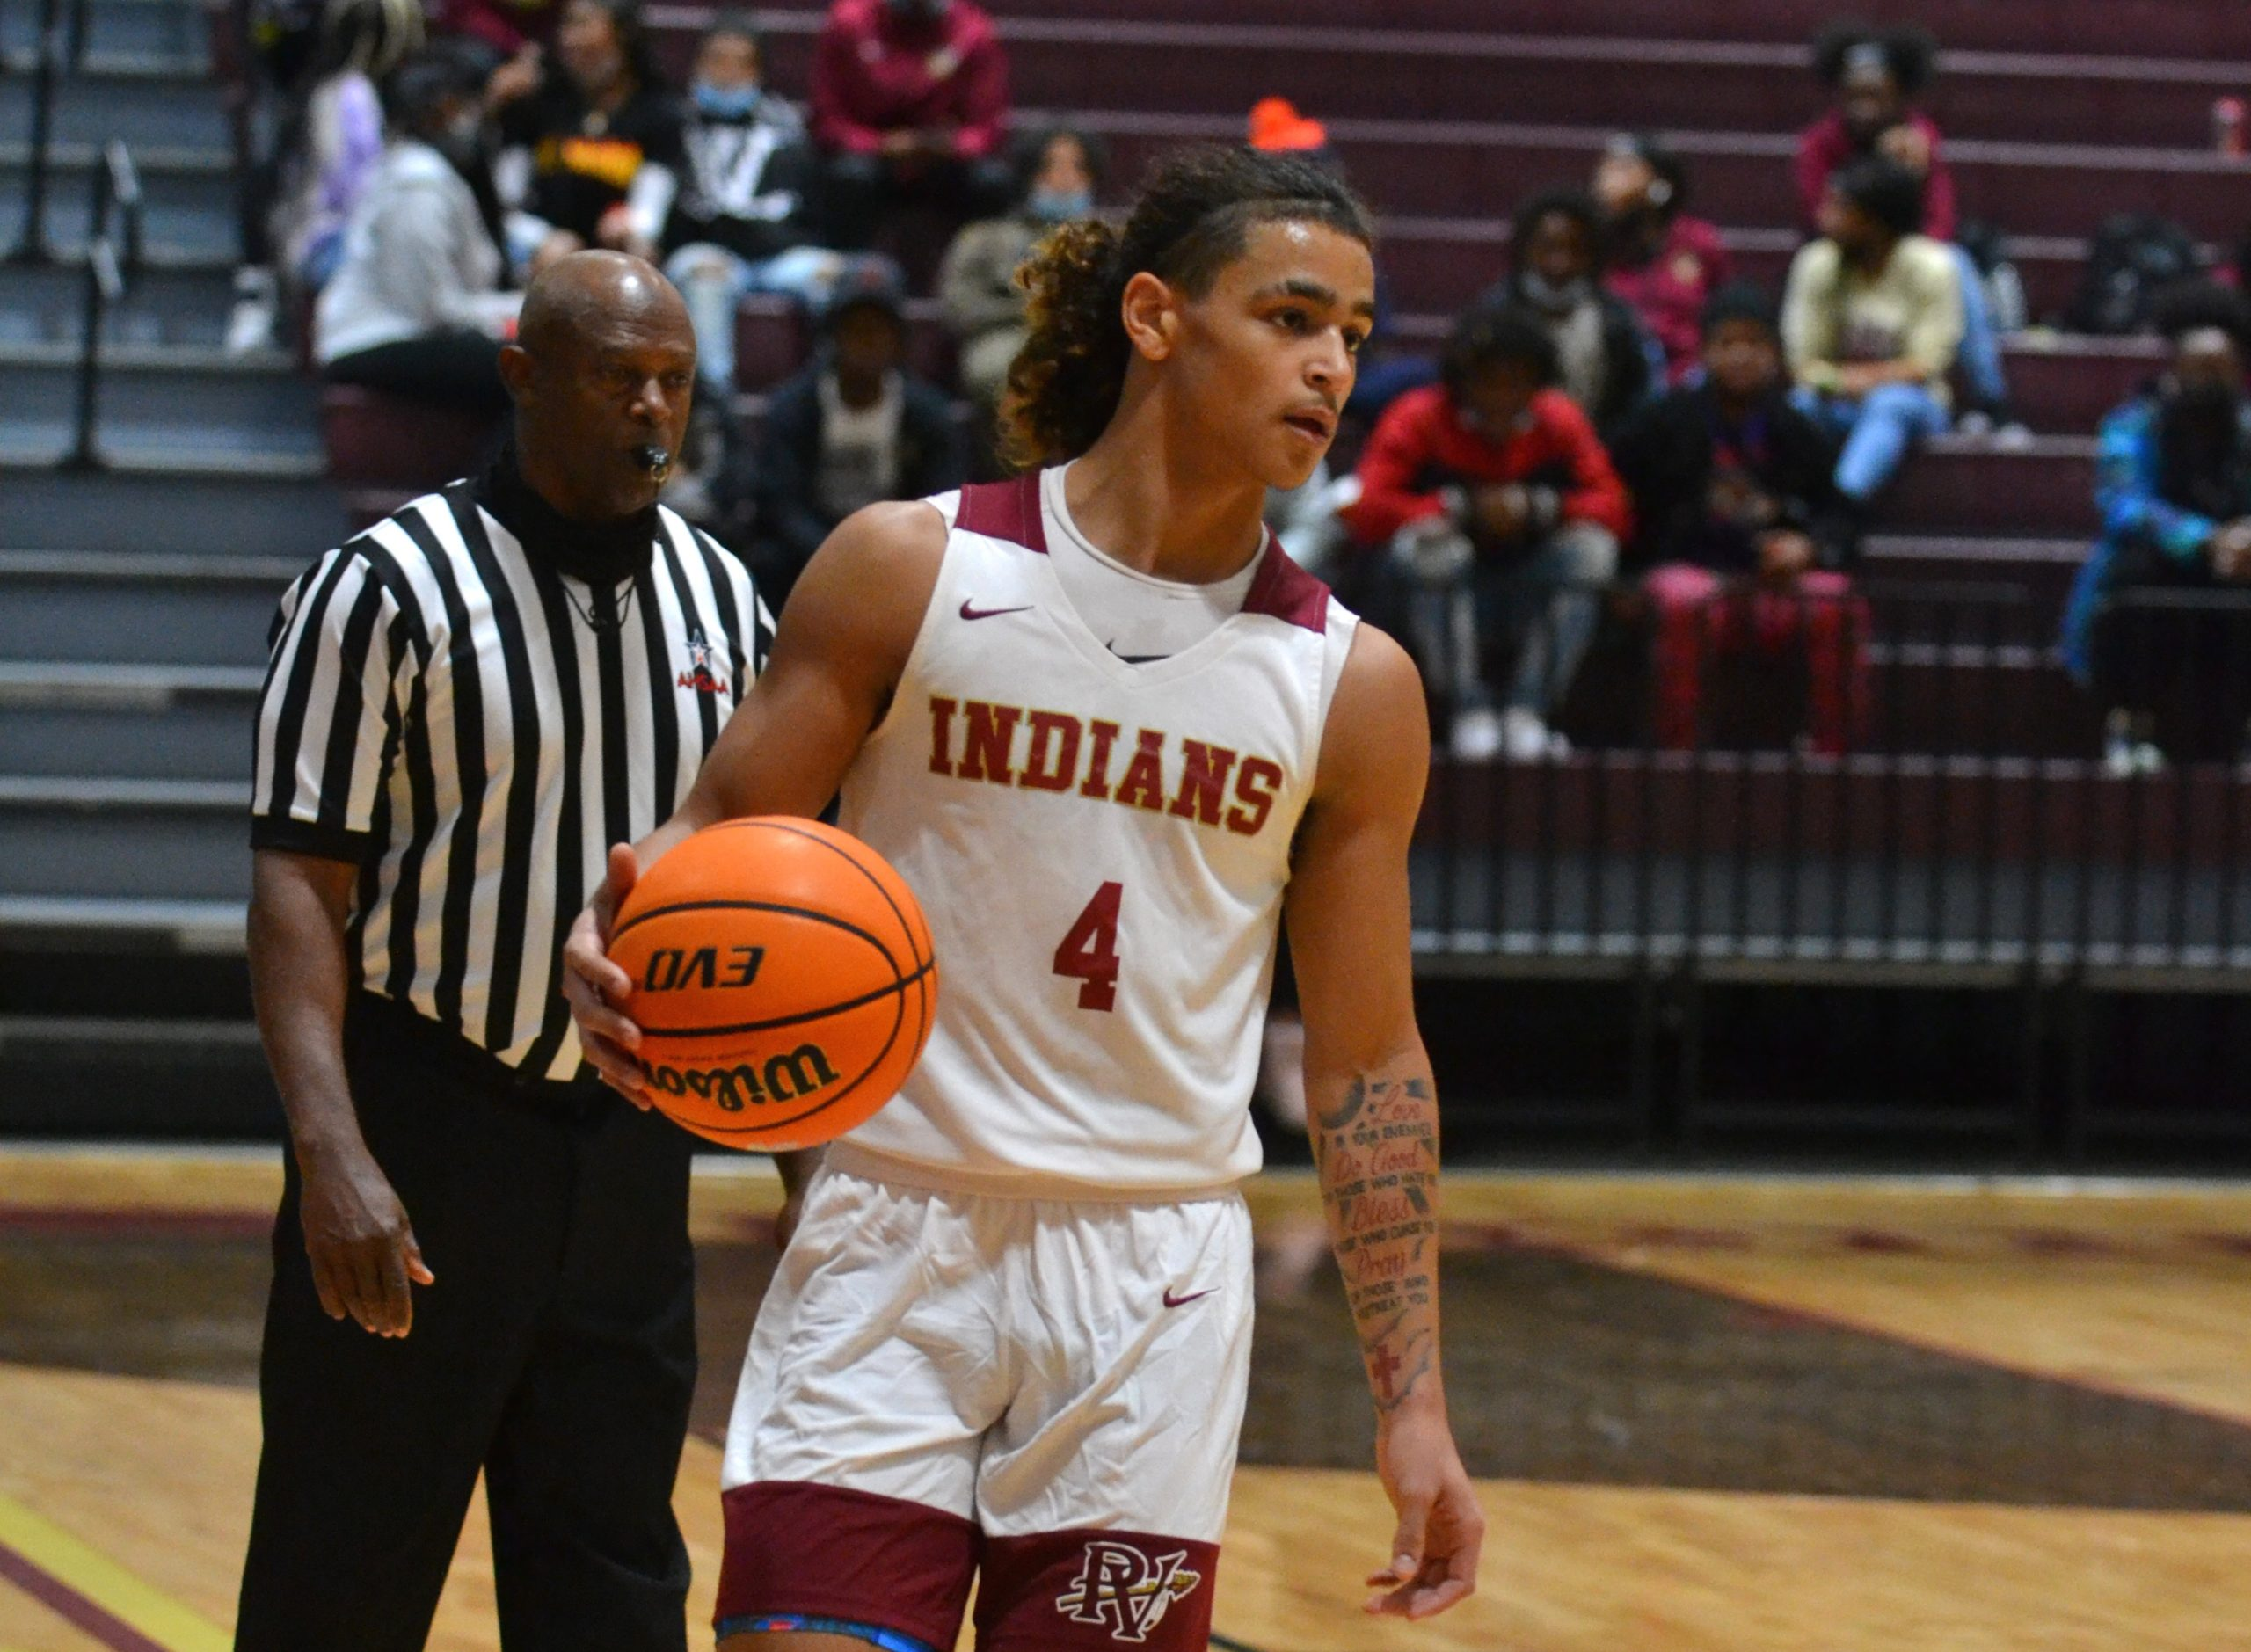 Big second half lifts No. 3 Pinson Valley over Clay-Chalkville 61-39